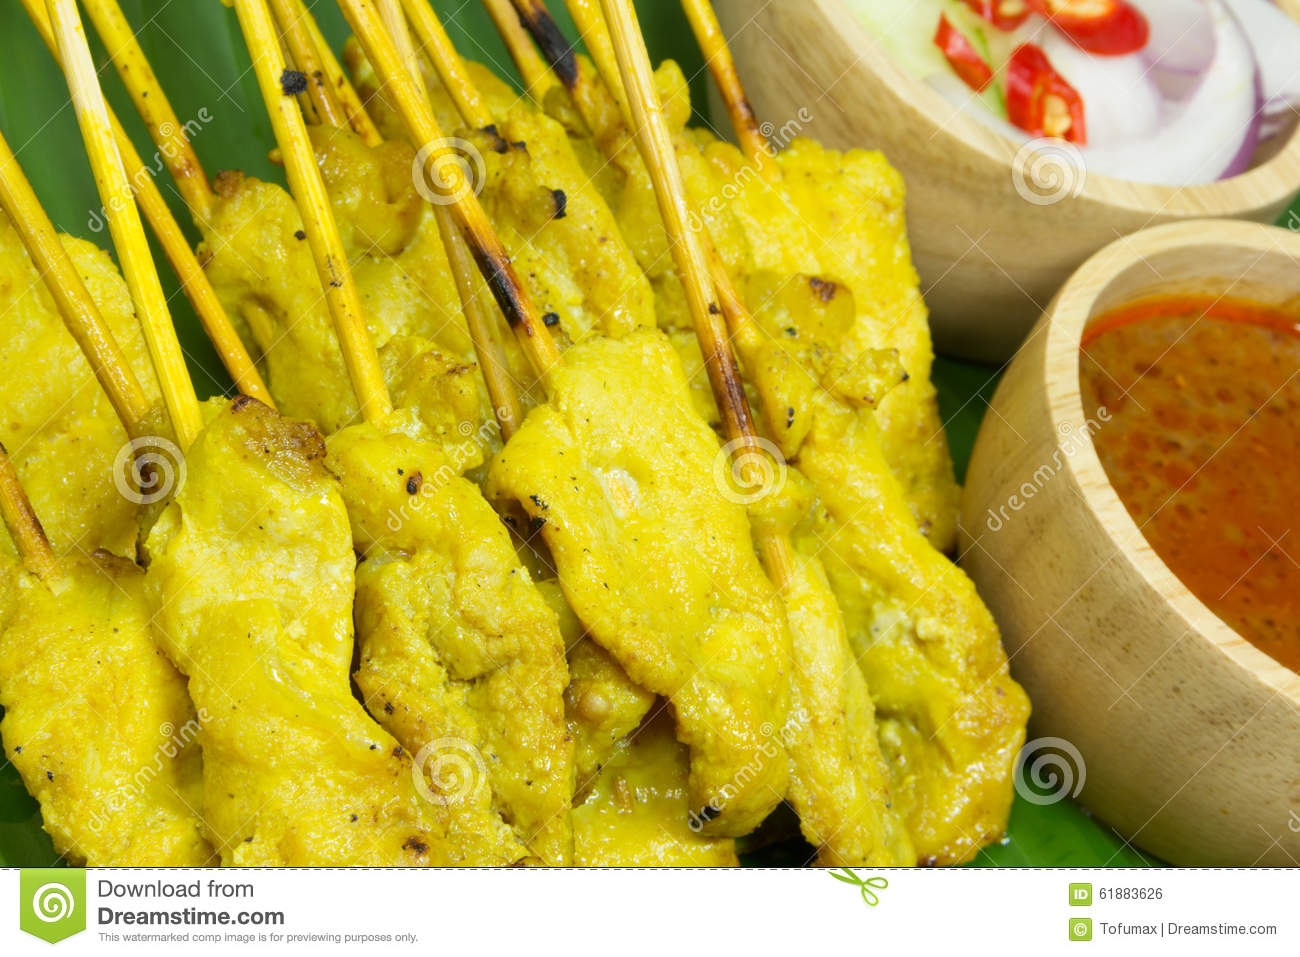 Grilled pork served with peanut sauce or sweet and sour sauce.